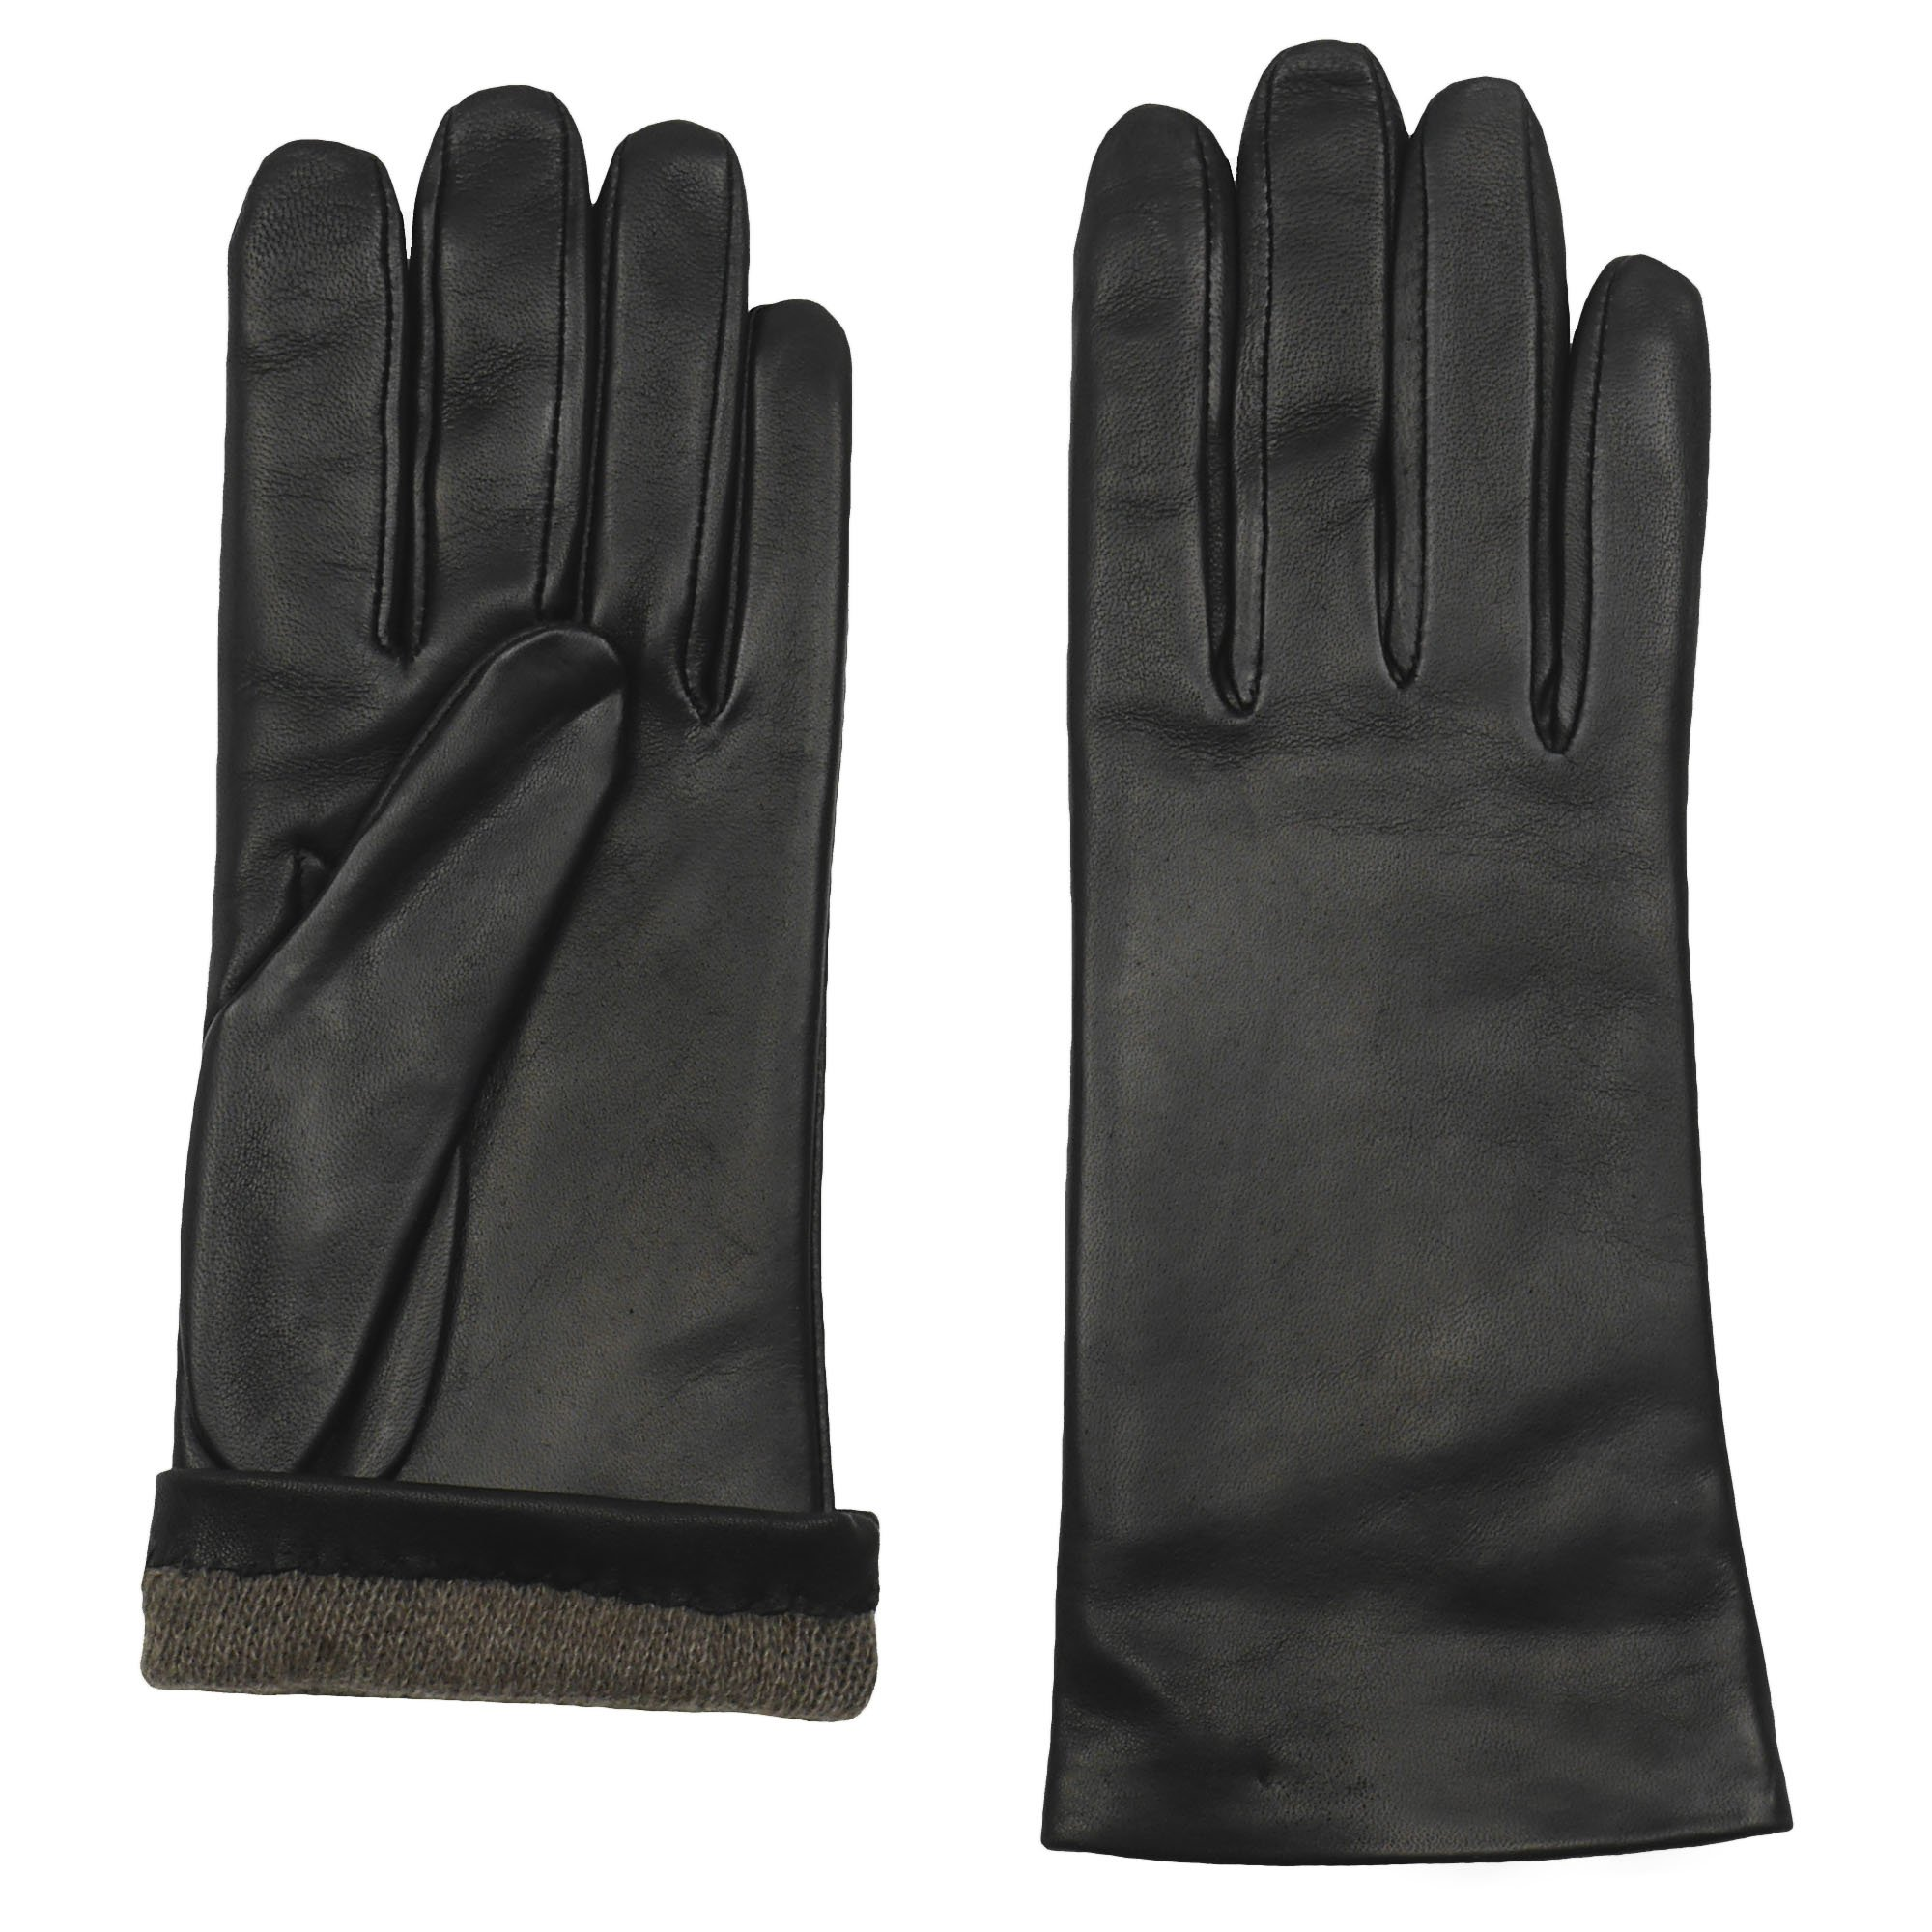 GRANDOE Women's Sheepskin Leather Glove, Cashmere Lined, 2 Btn Length